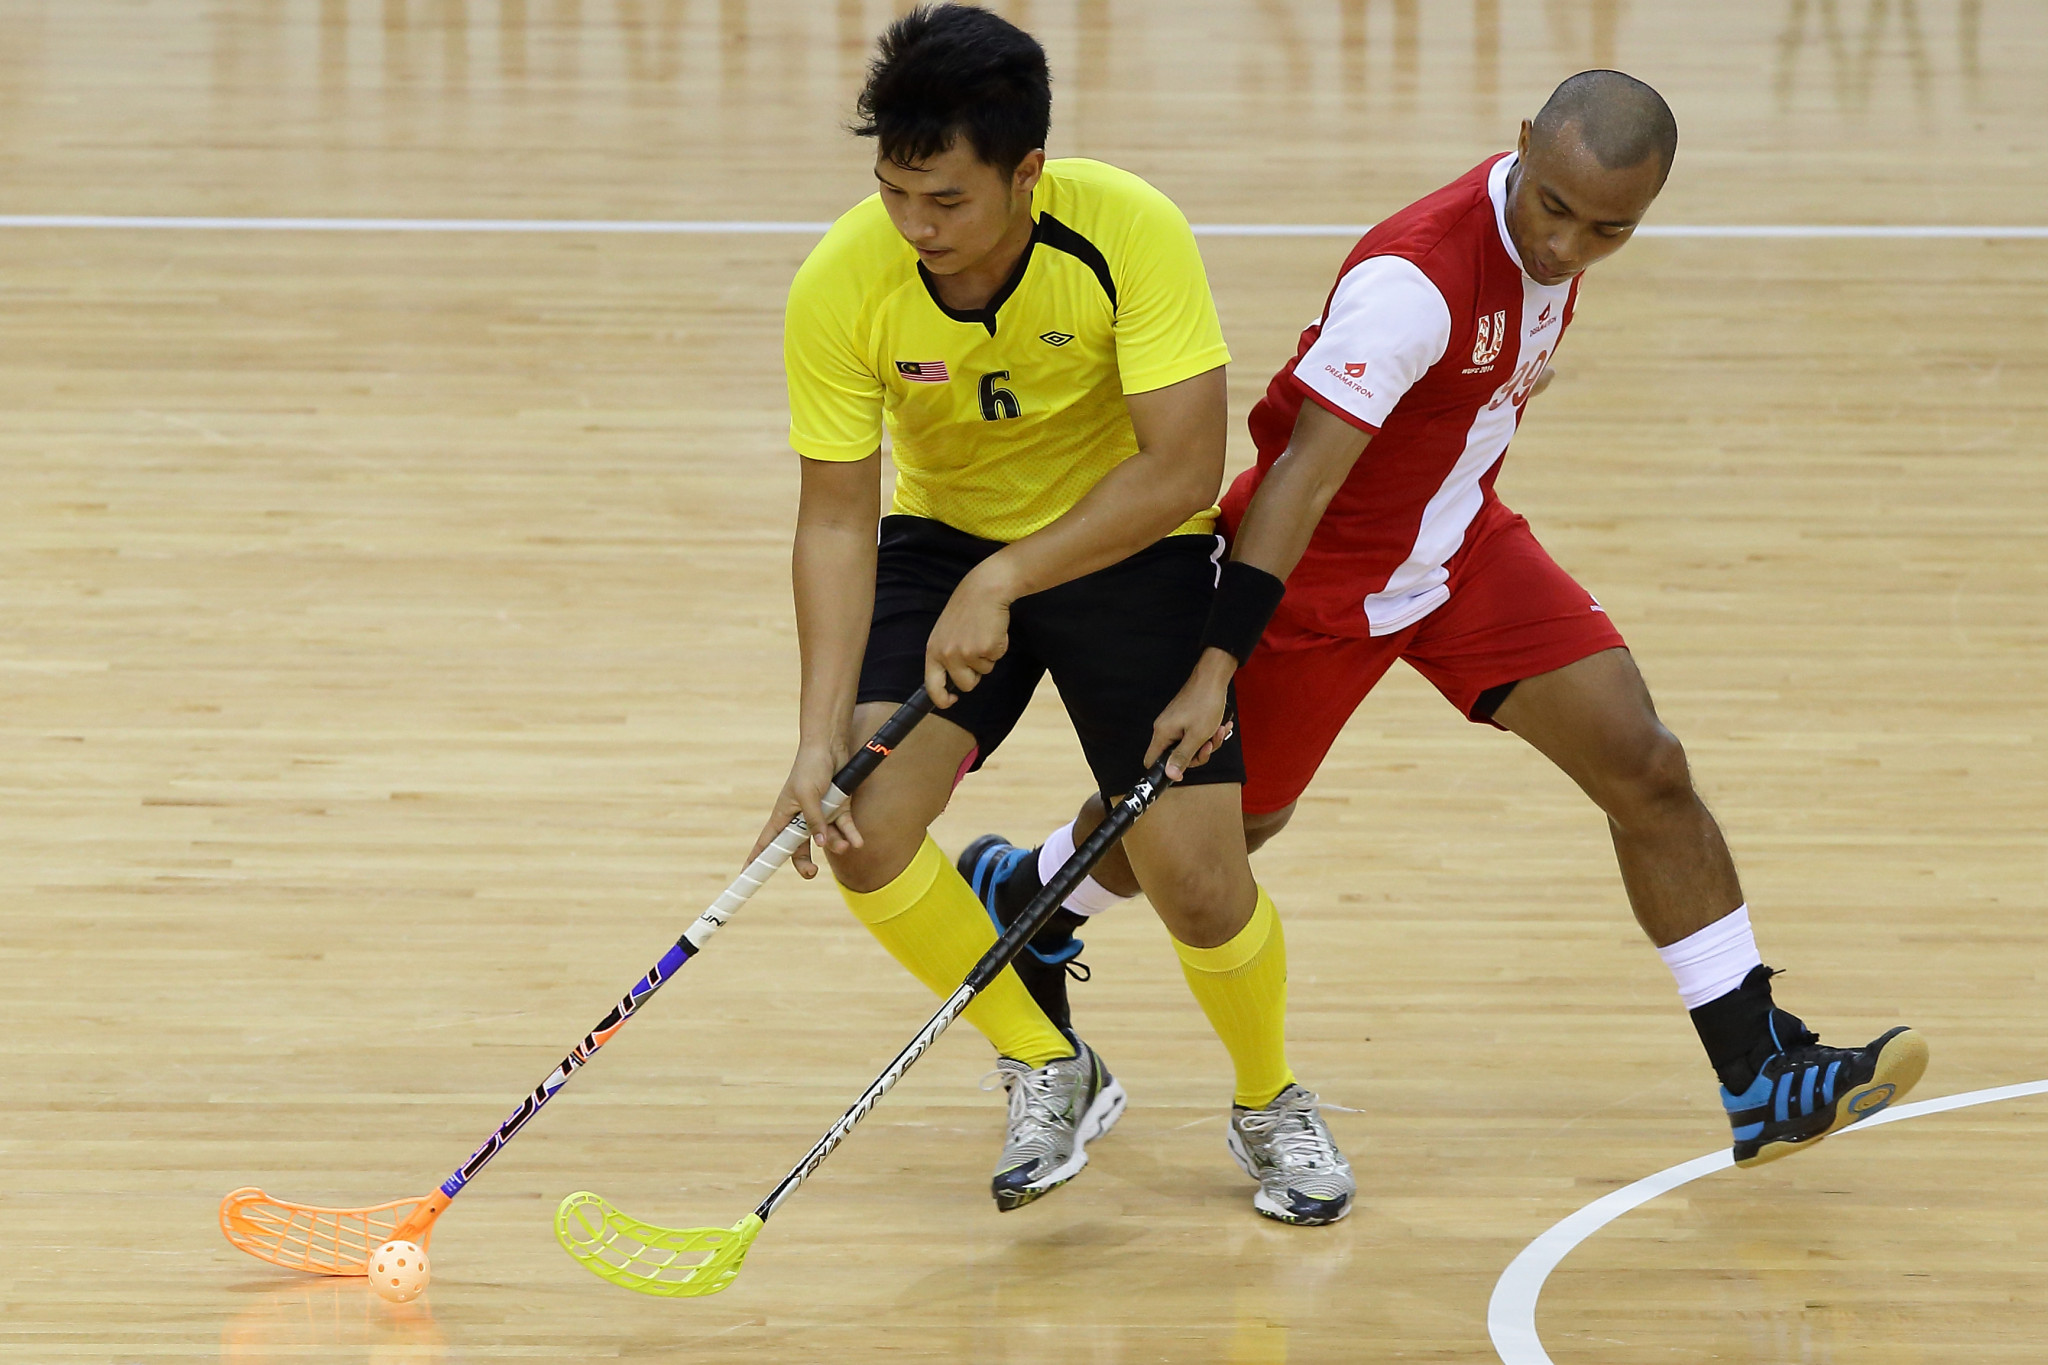 Canada halfway to IFF Men's World Championships after win over United States